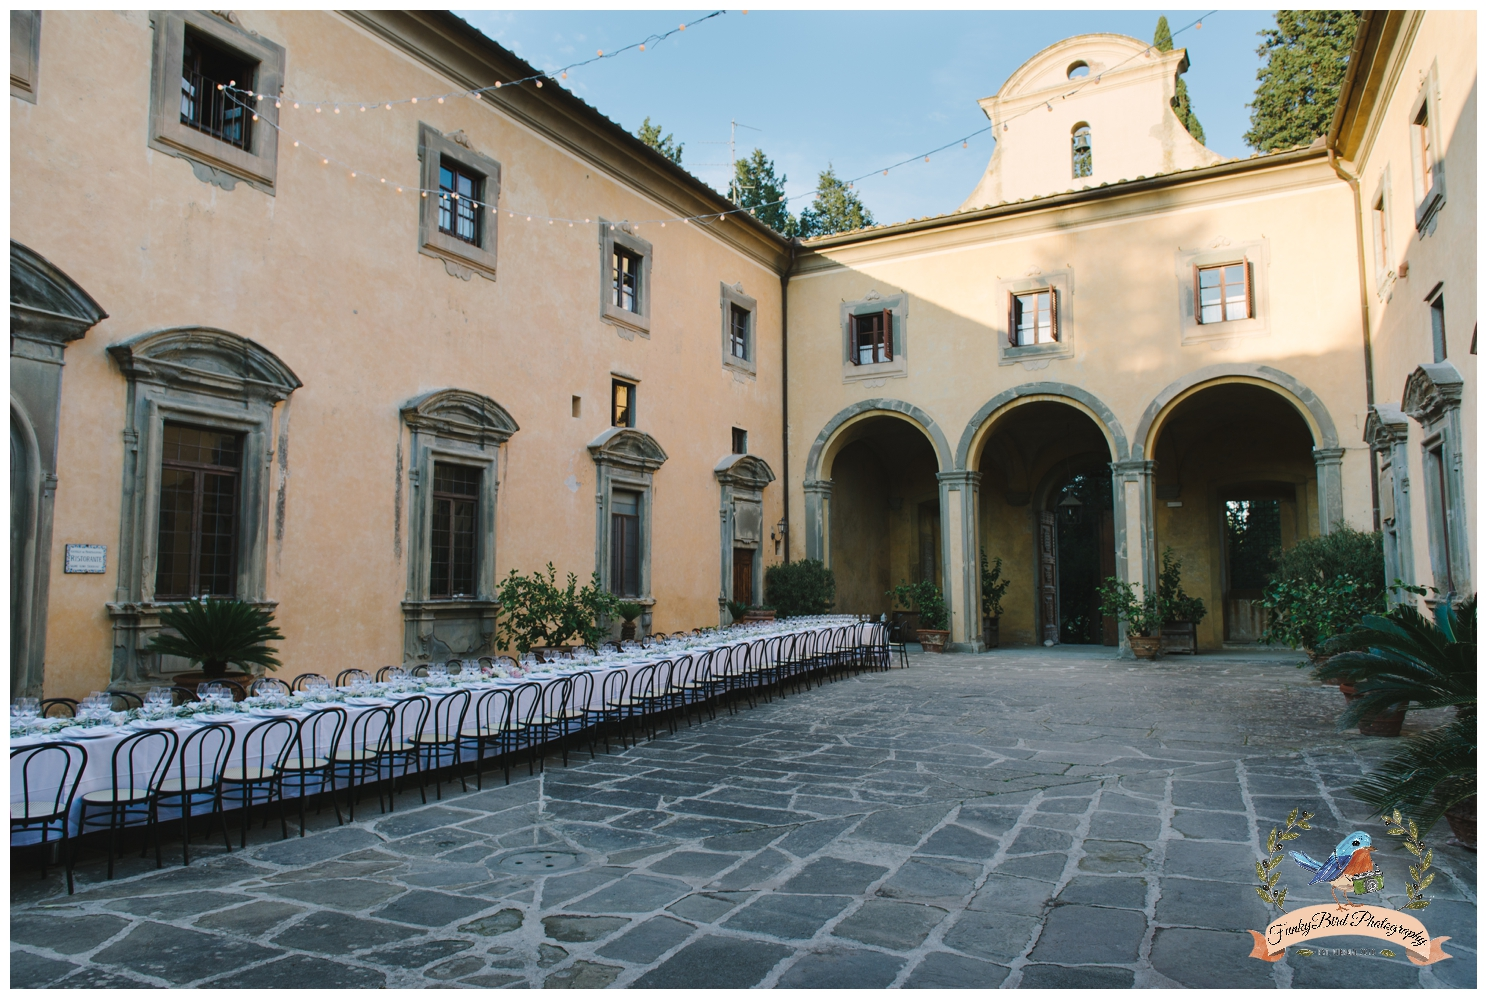 Wedding Photographer in Tuscany, Wedding Photographer in Florence, Wedding Photographer Siena, Italian Wedding Photographer, Wedding in Tuscany, Wedding in Florence, Wedding in Italy, Castello di Montegufoni